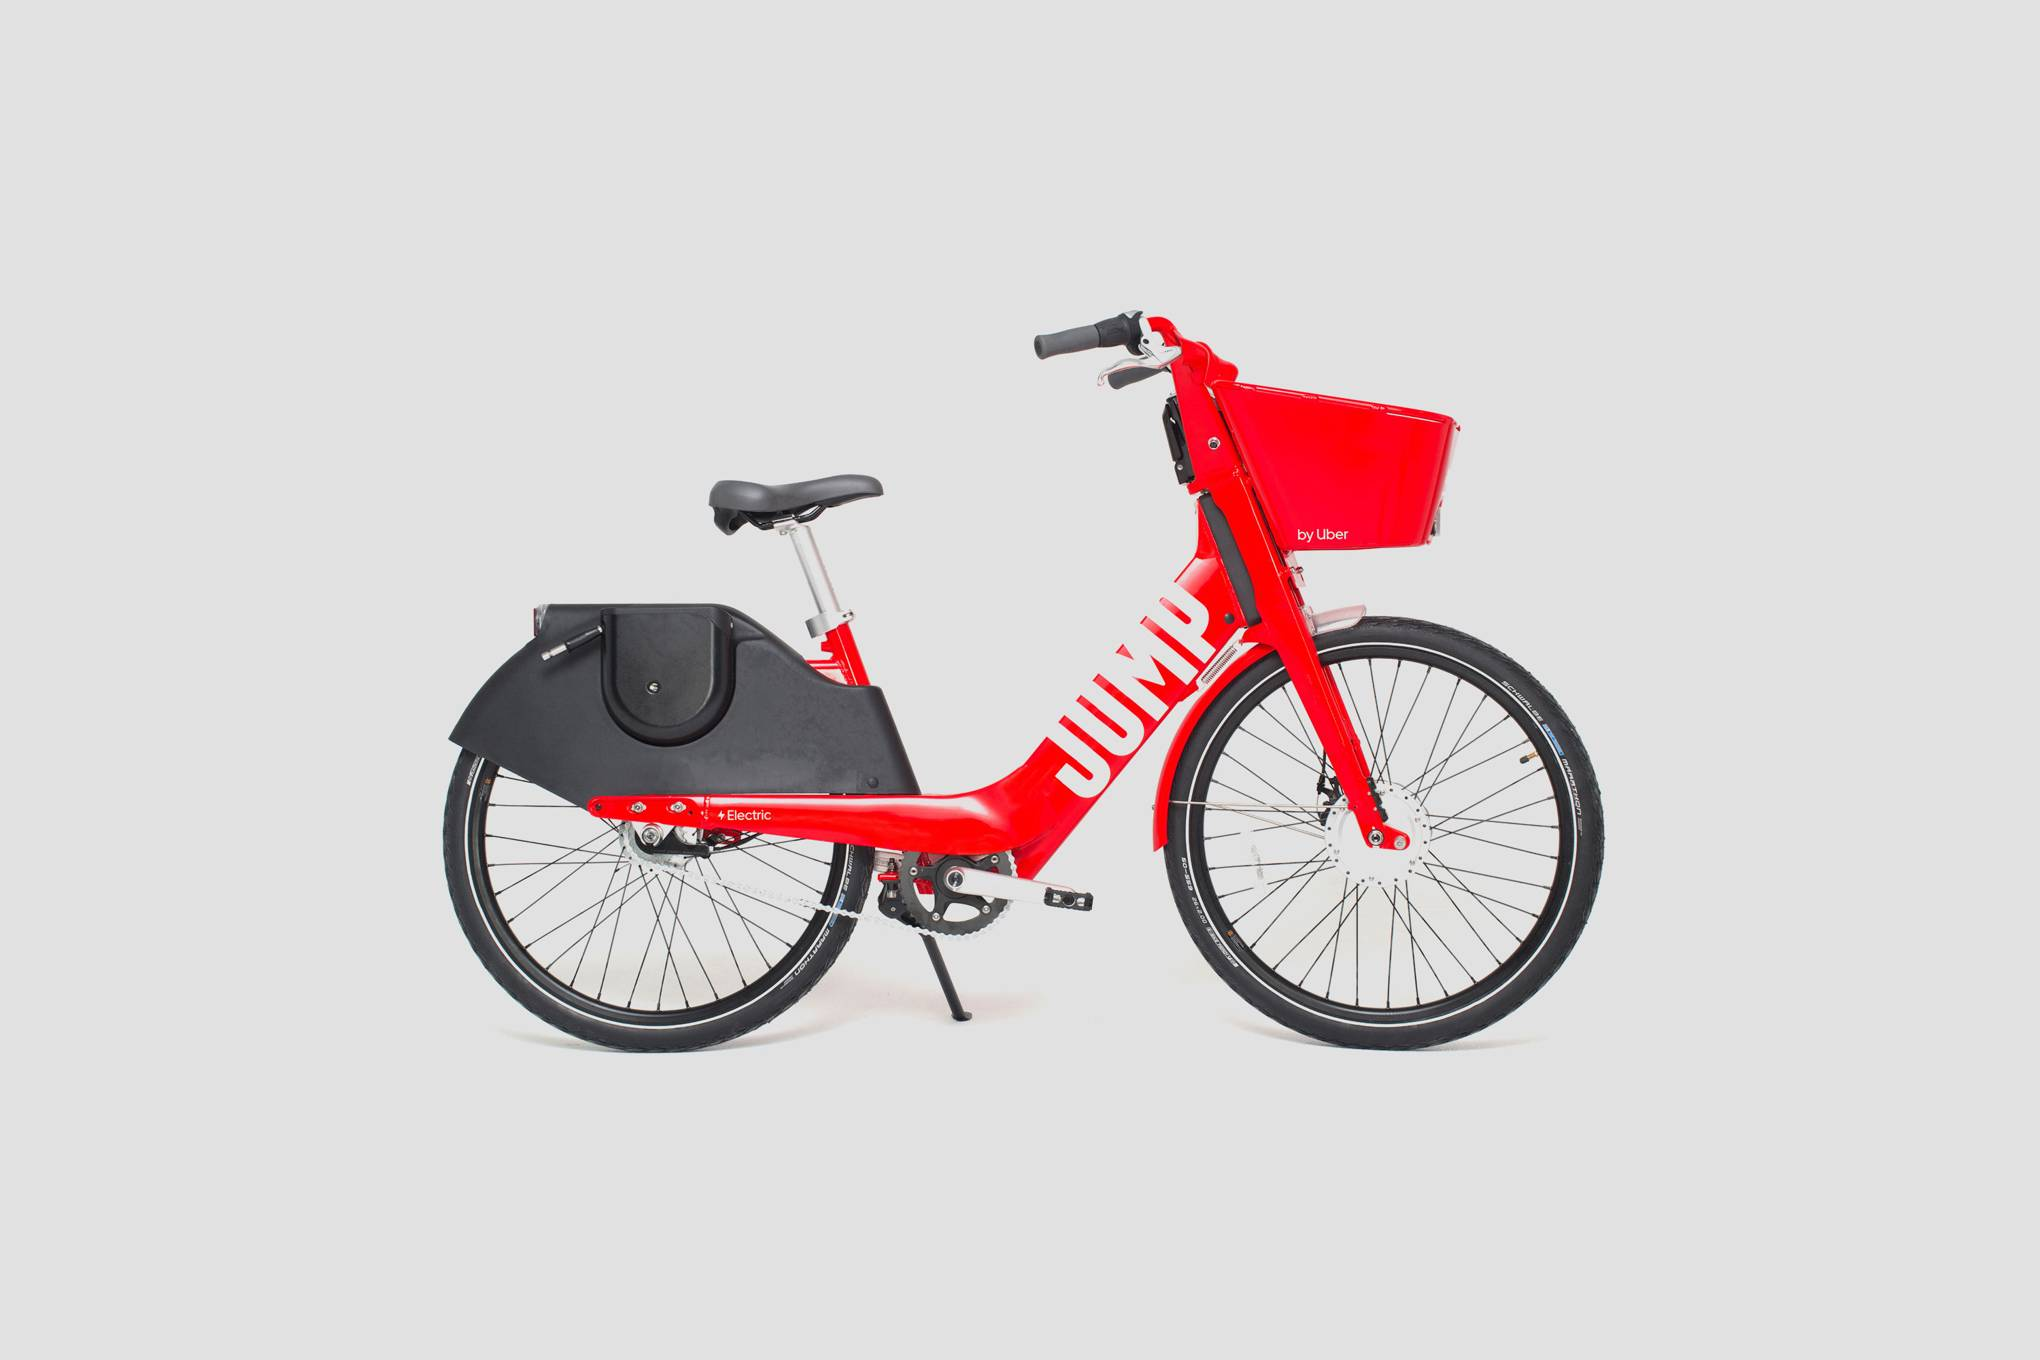 Uber's billions could help its dockless e-bikes conquer